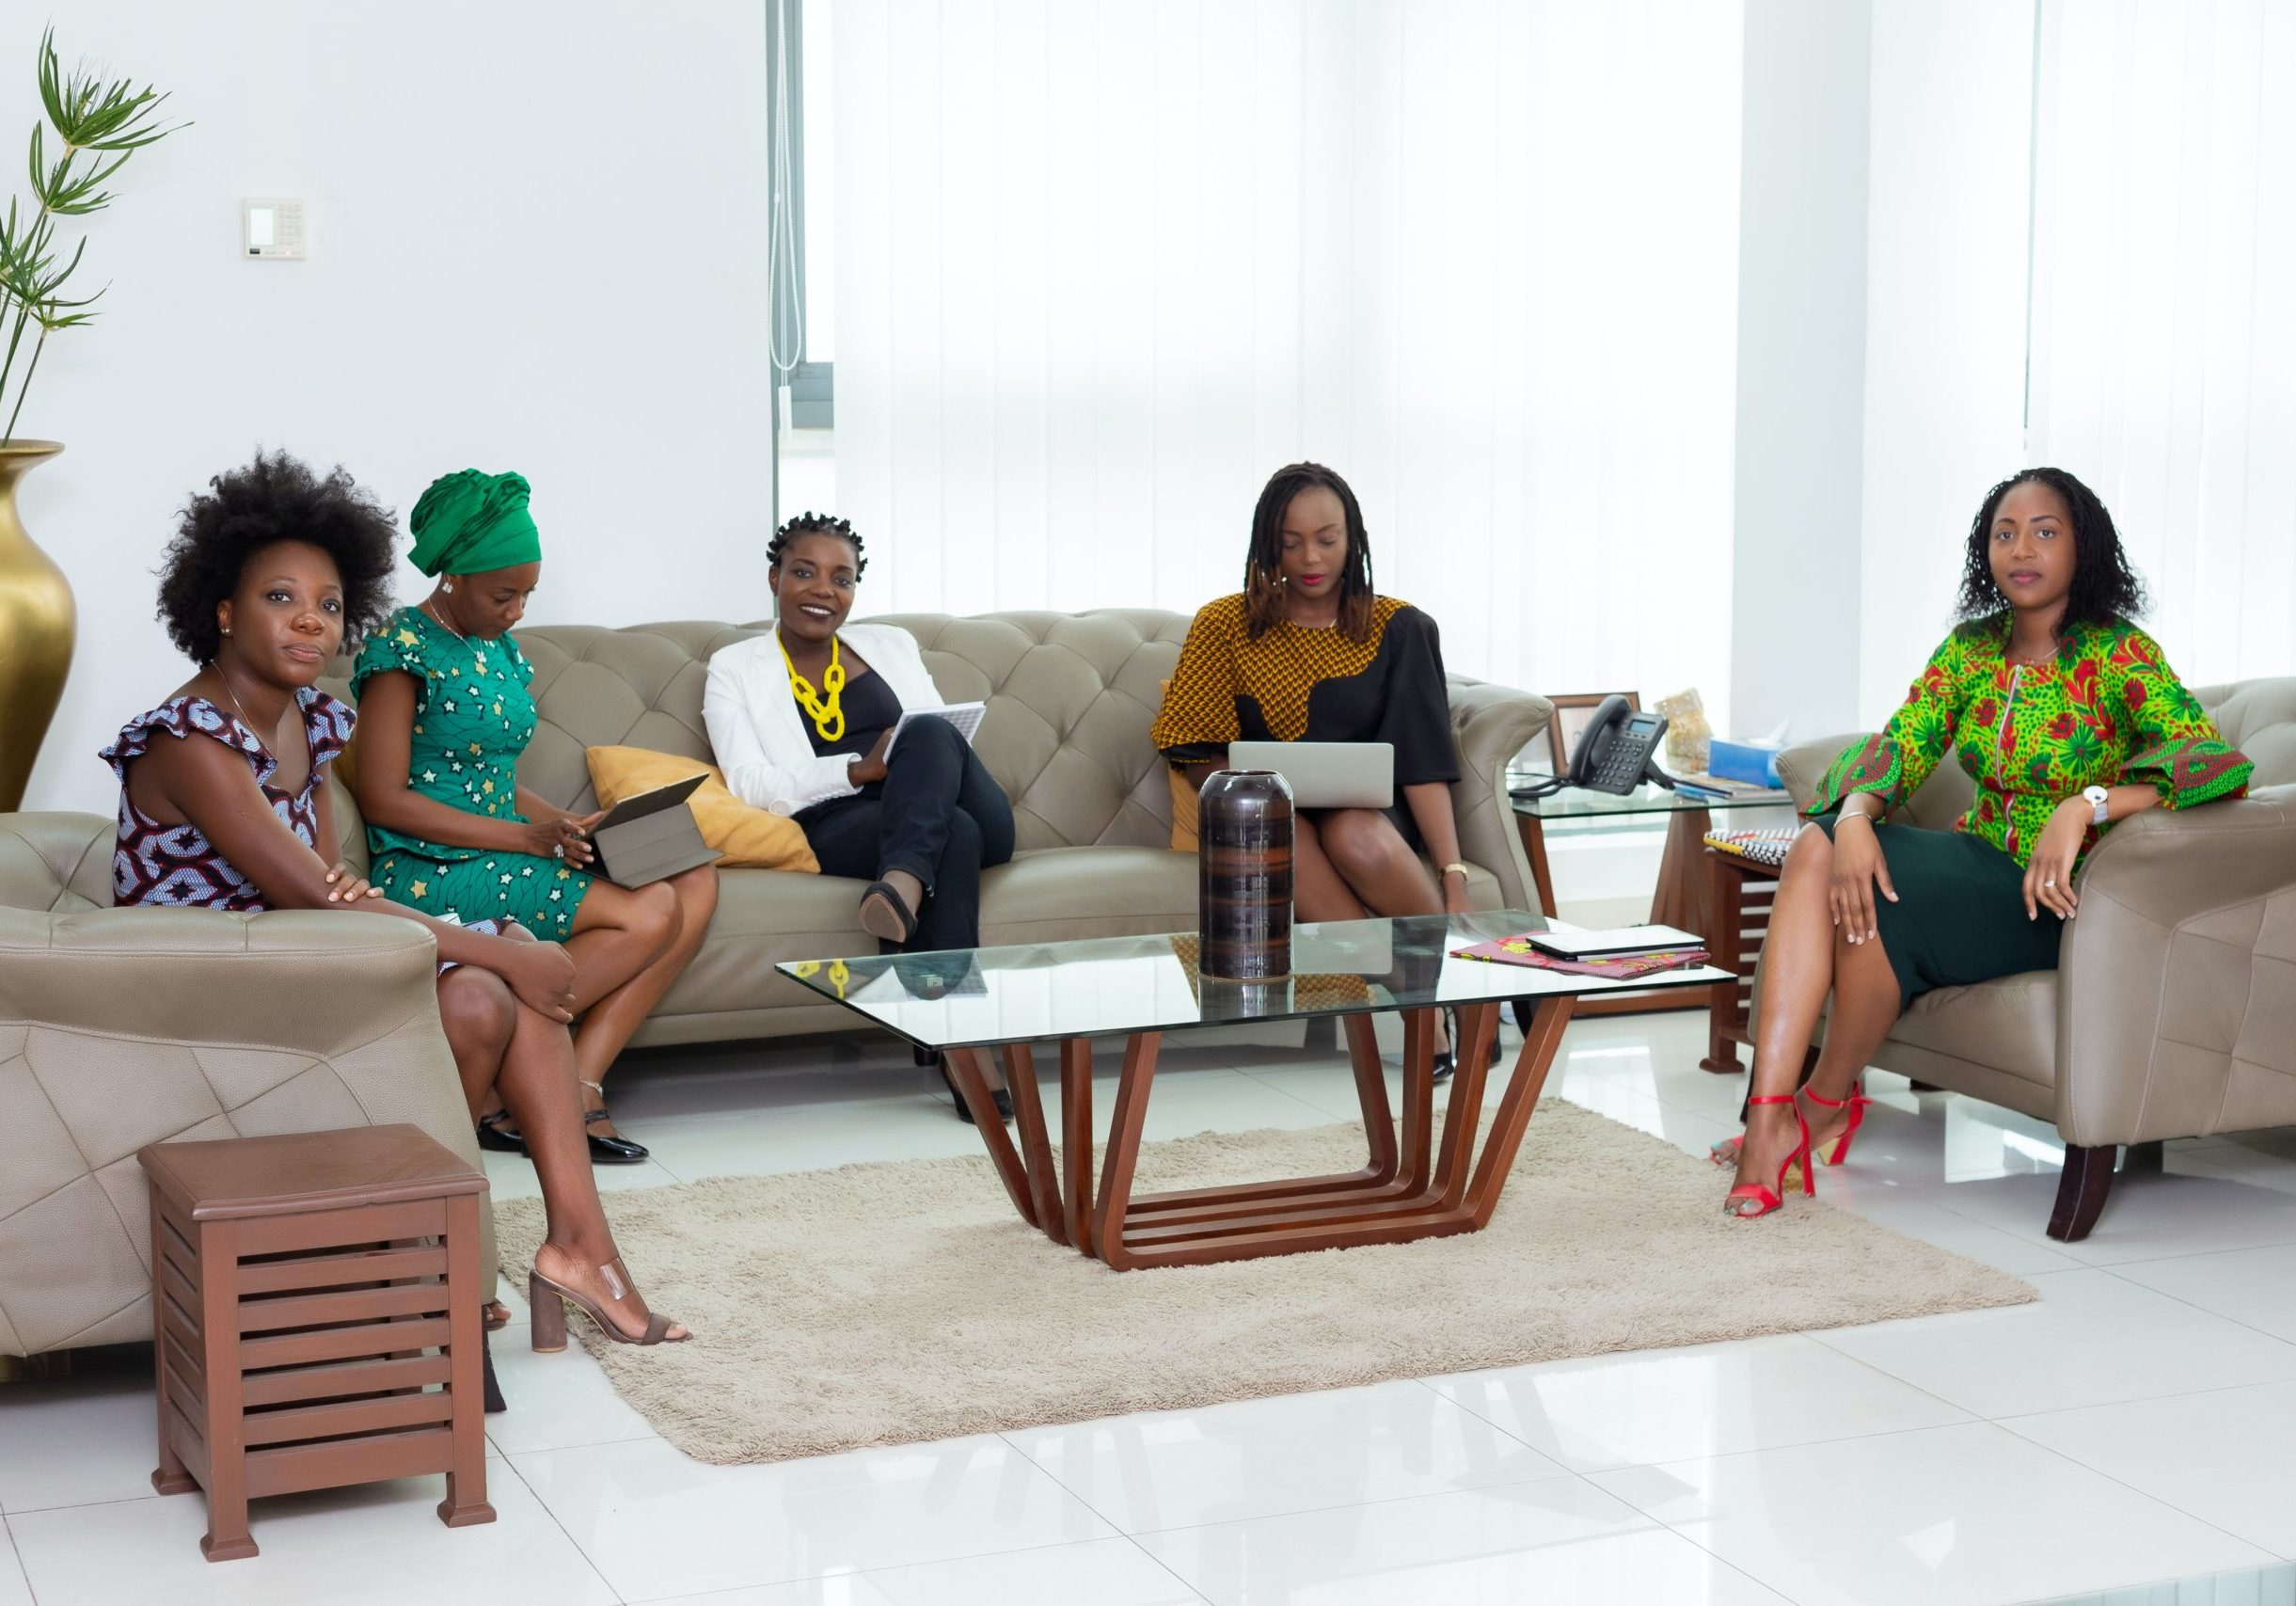 group-of-women-sitting-on-couch-3869651